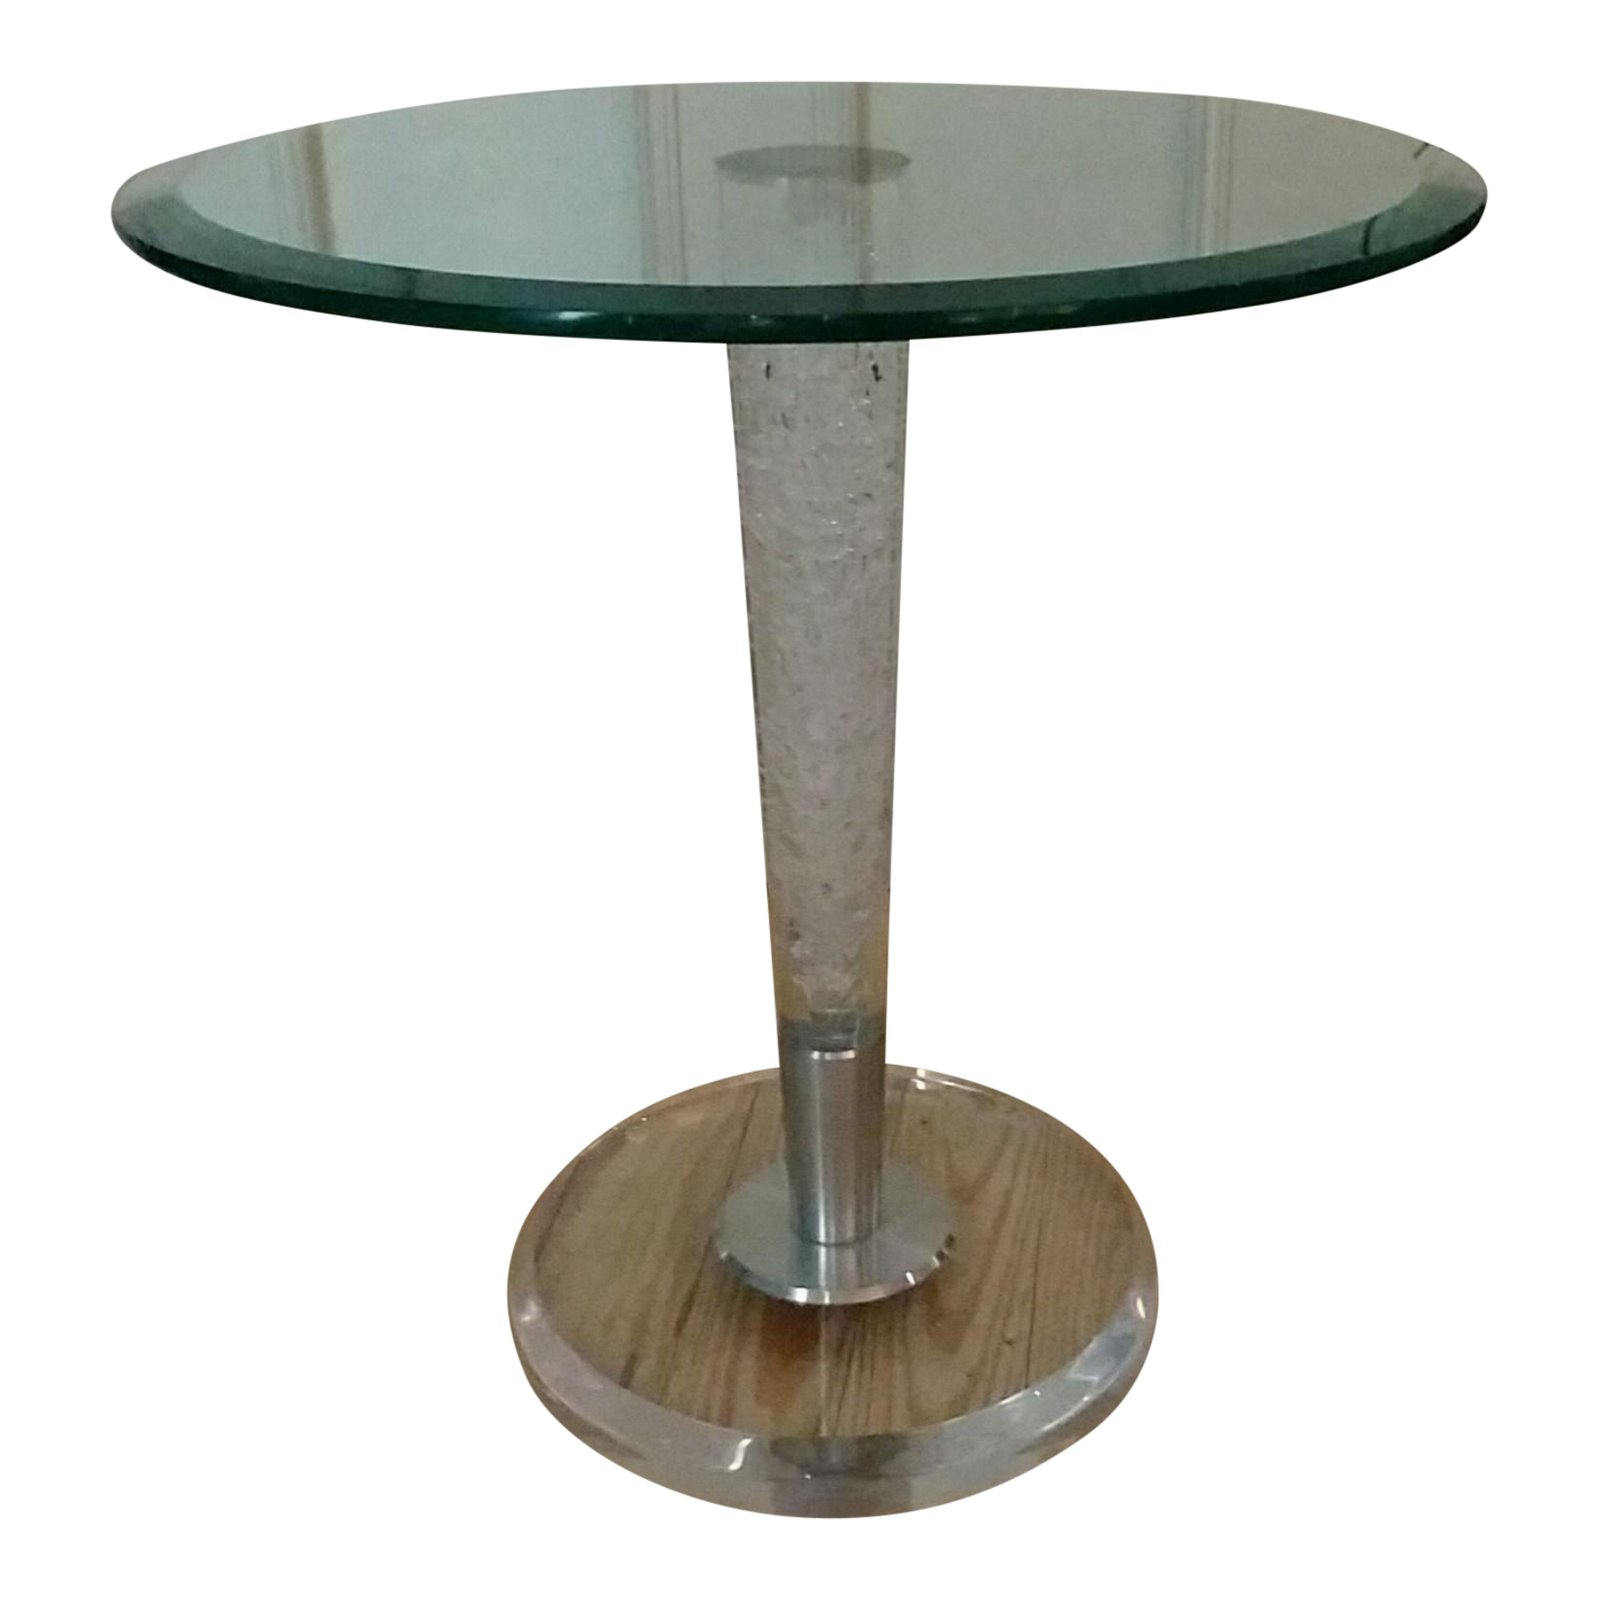 haziza studio glass acrylic accent table chairish and contemporary coffee tables with storage round oak end ashley furniture porcelain vase lamp room essentials lucite waterfall